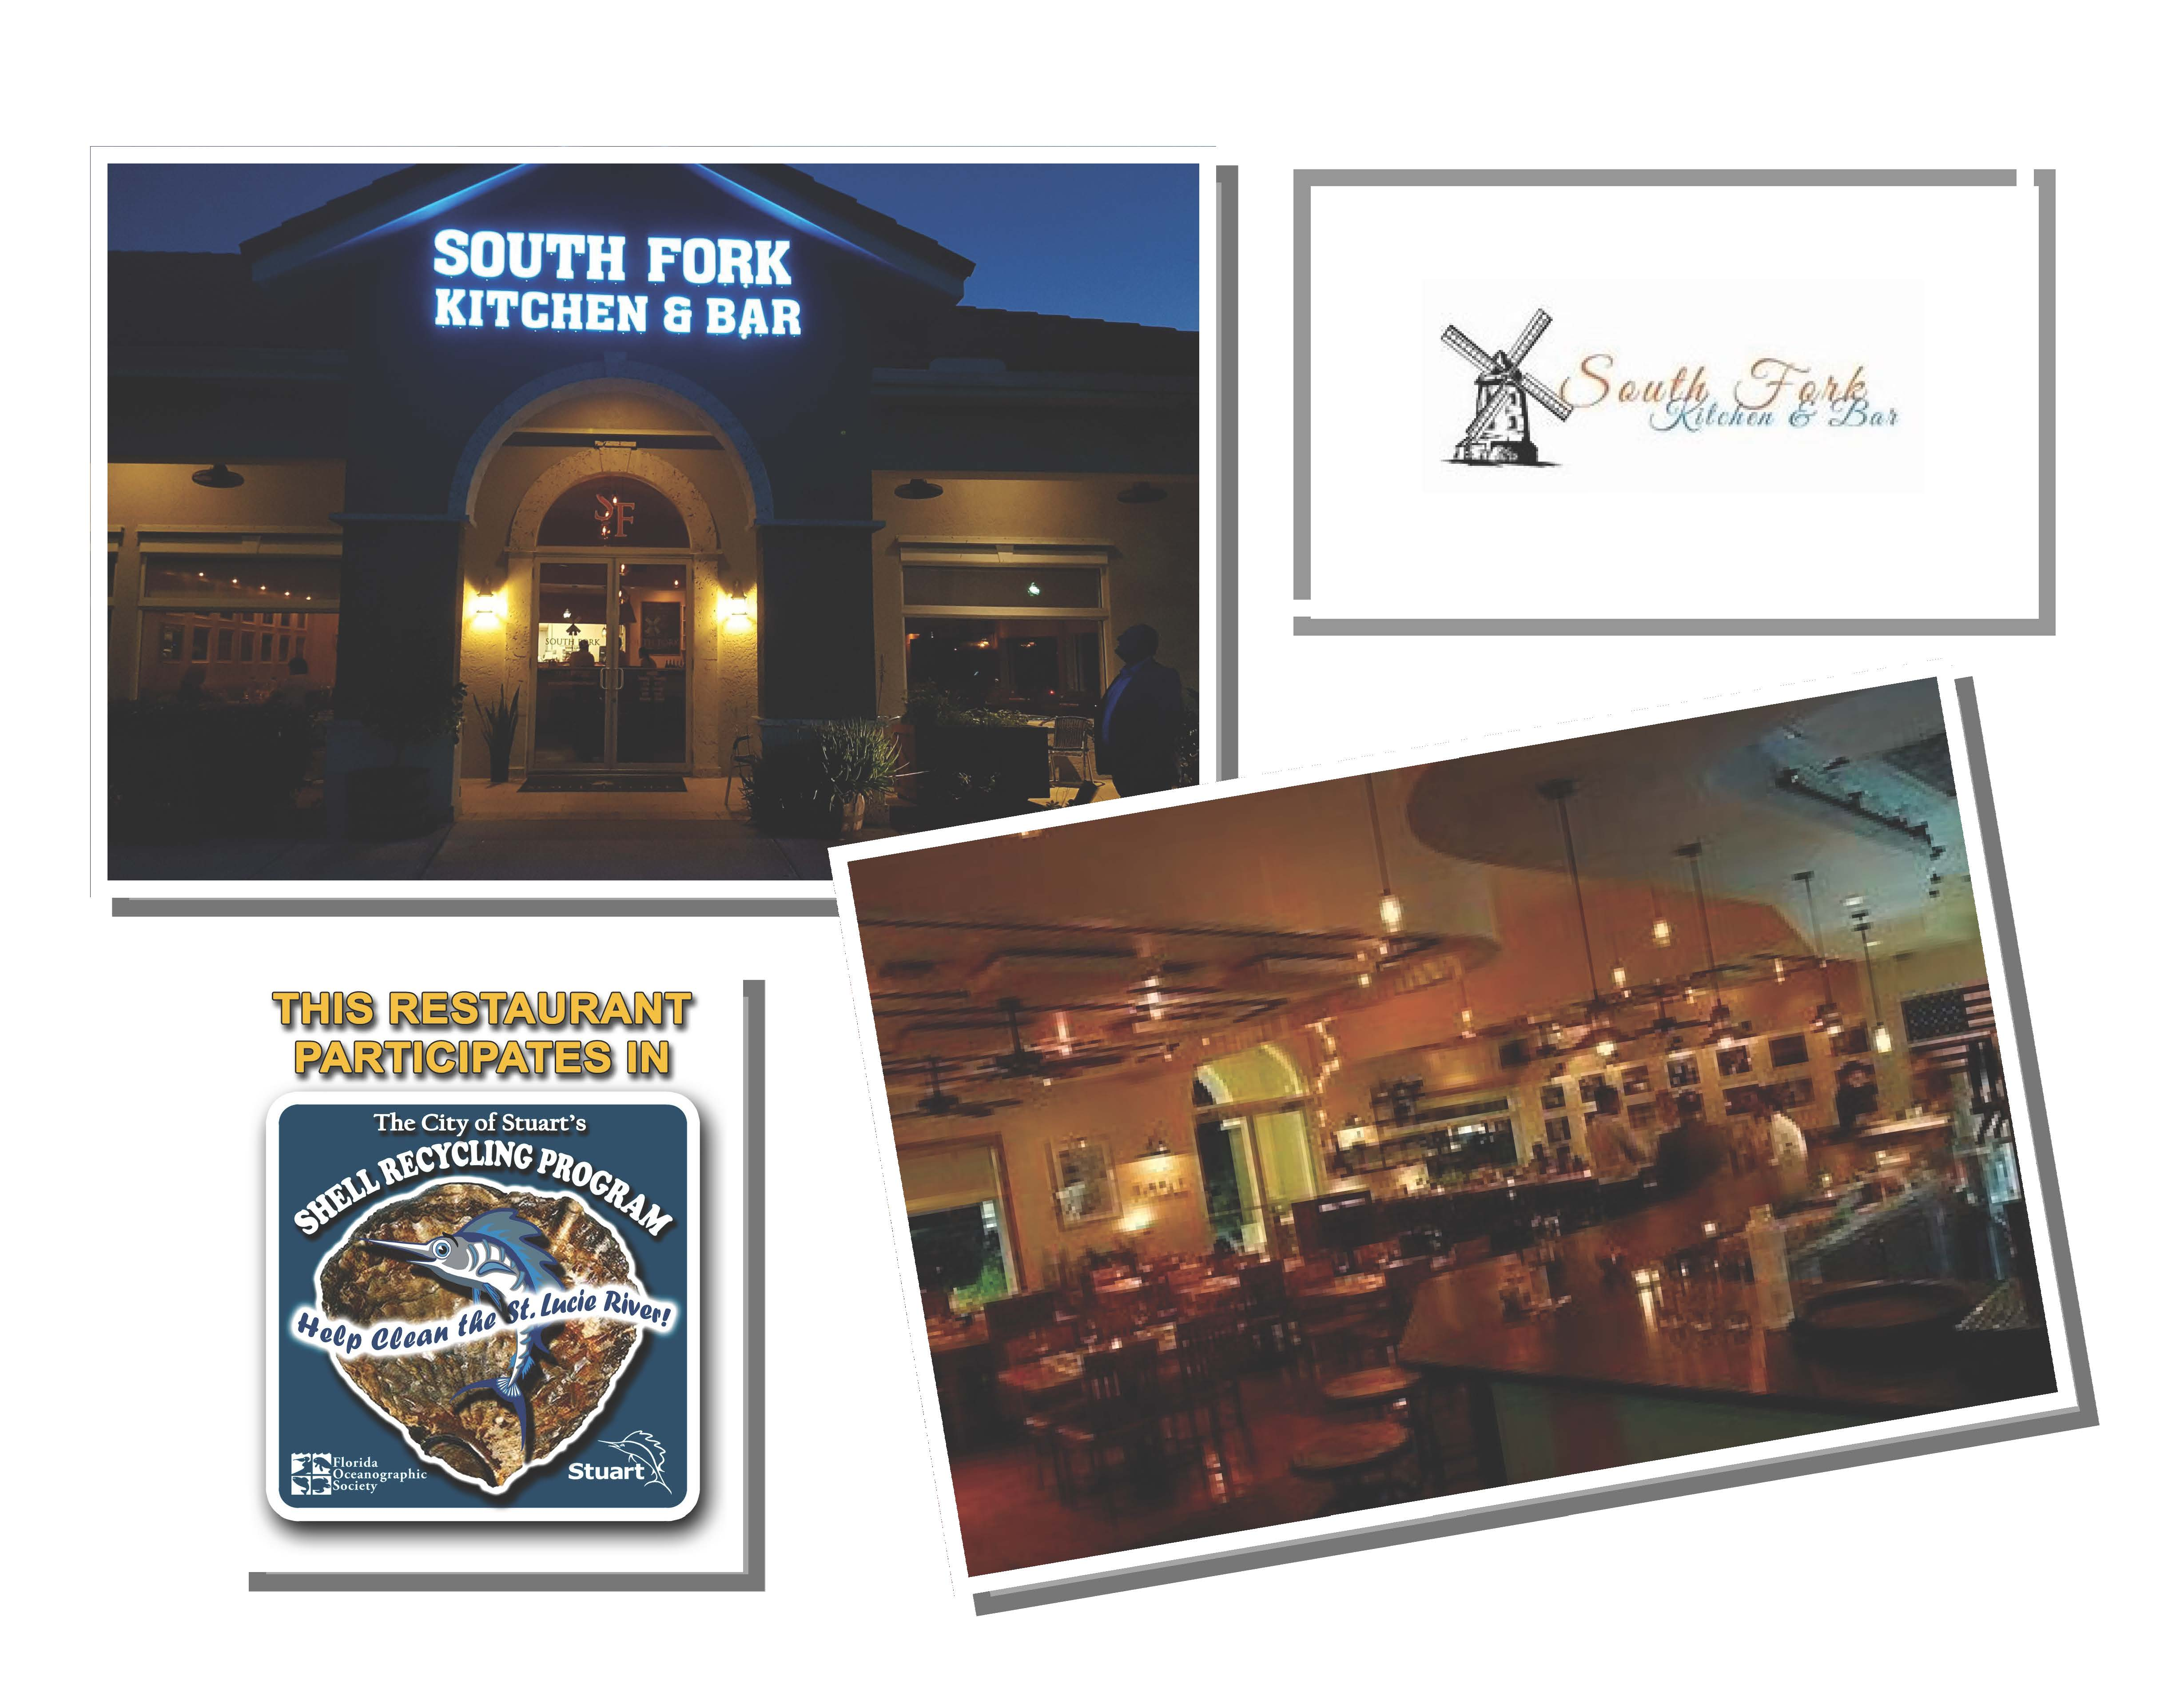 South Fork Kitchen and Bar